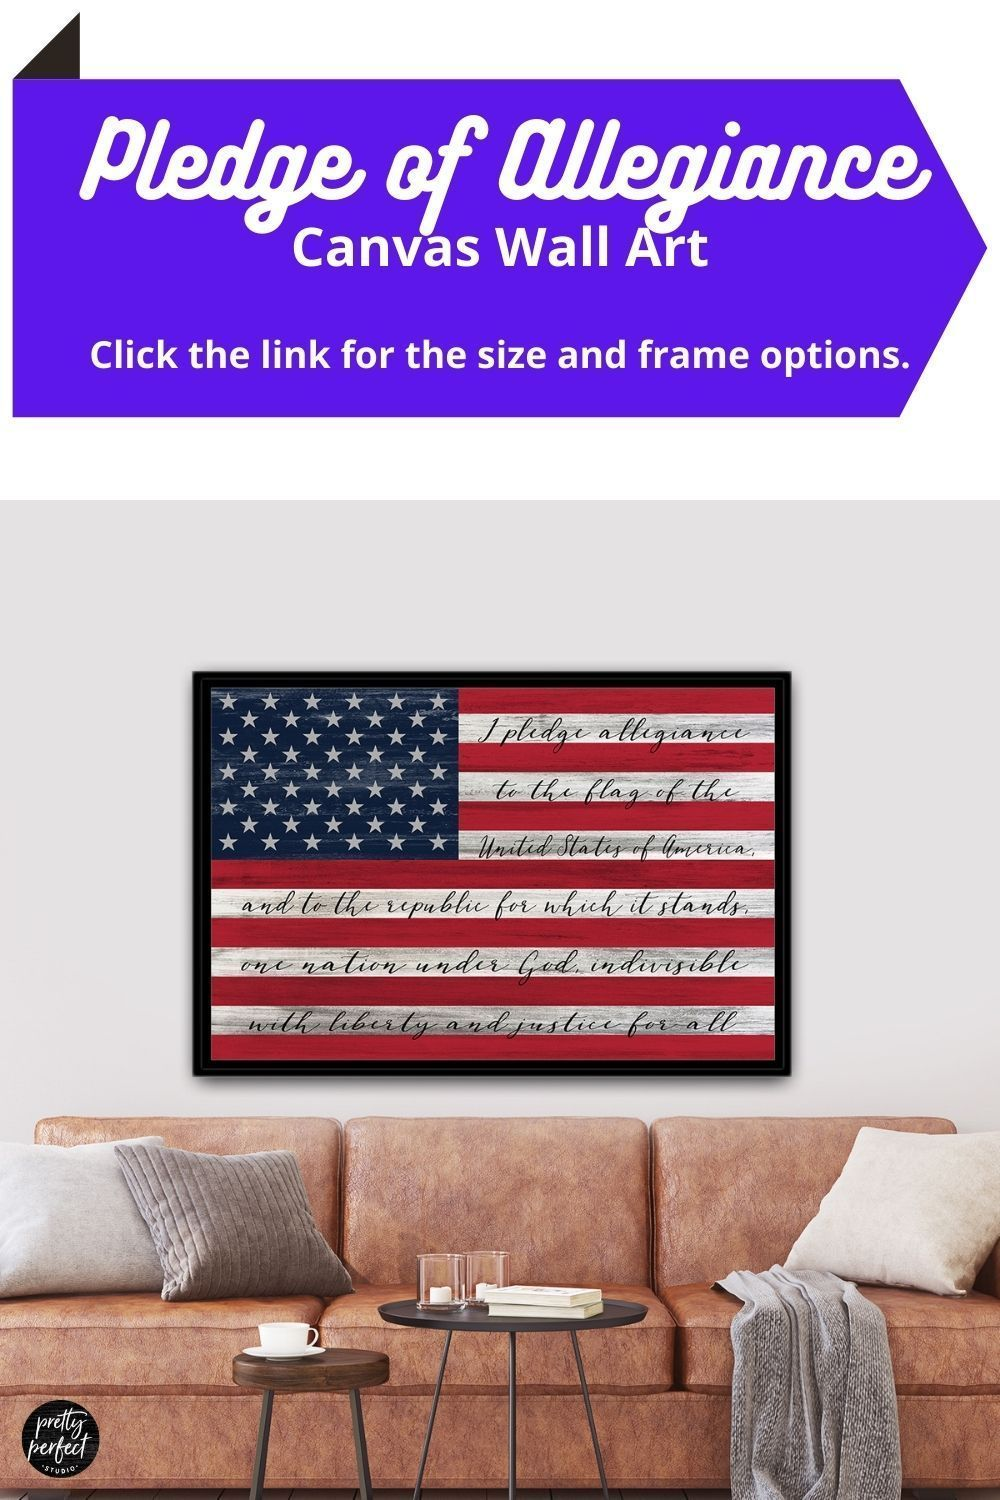 Large American Flag Sign With Pledge Of Allegiance In 2020 Wall Art Canva What Doe Mean To Me Republic Justice The